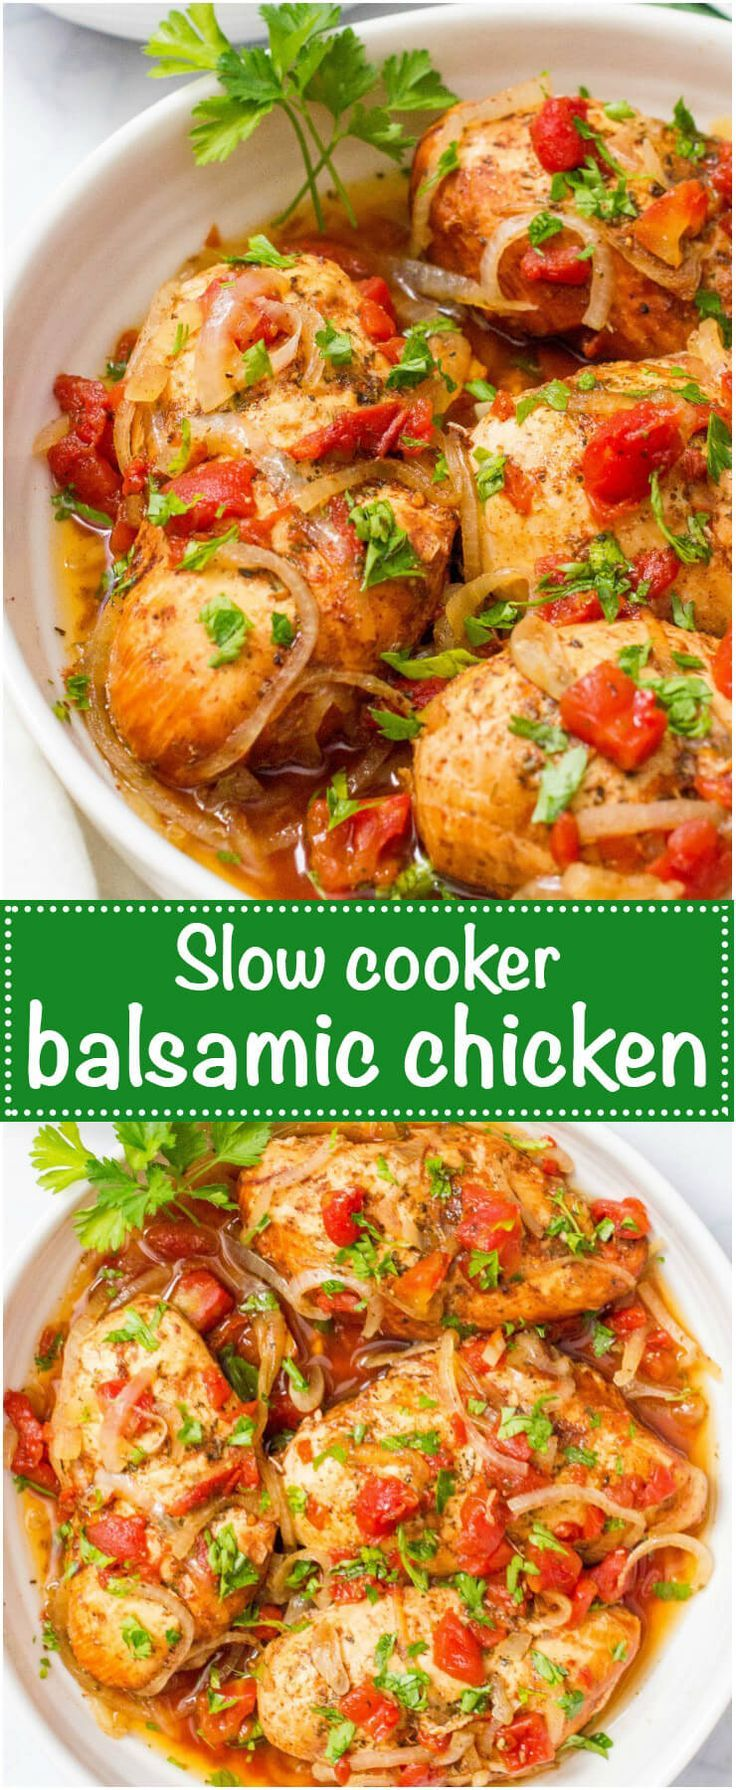 Slow cooker balsamic chicken is easy to prep with just a few ingredients for a simple weeknight dinner that has big flavor! | http://www.familyfoodonthetable.com